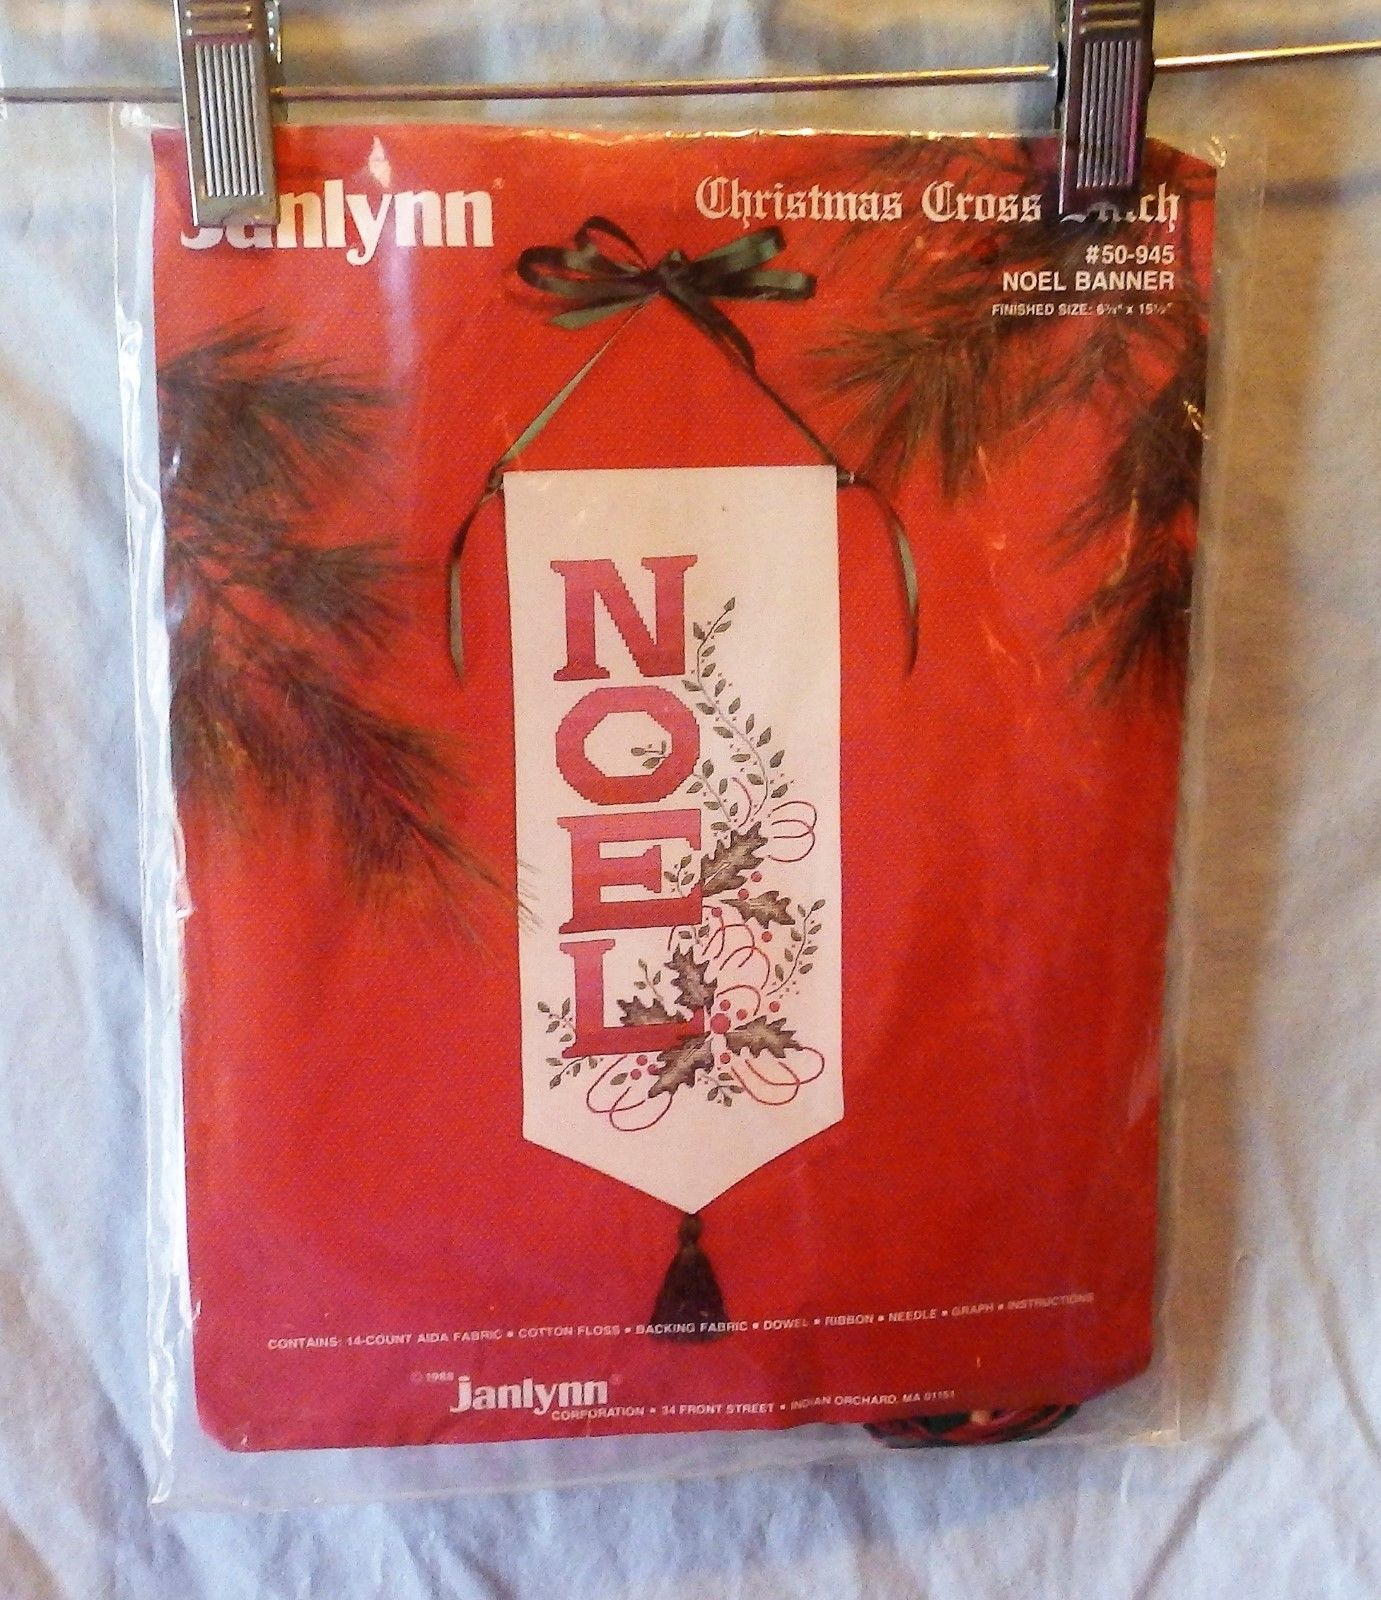 Janlynn Christmas Noel Banner Counted Cross Stitch Kit #50 945 -